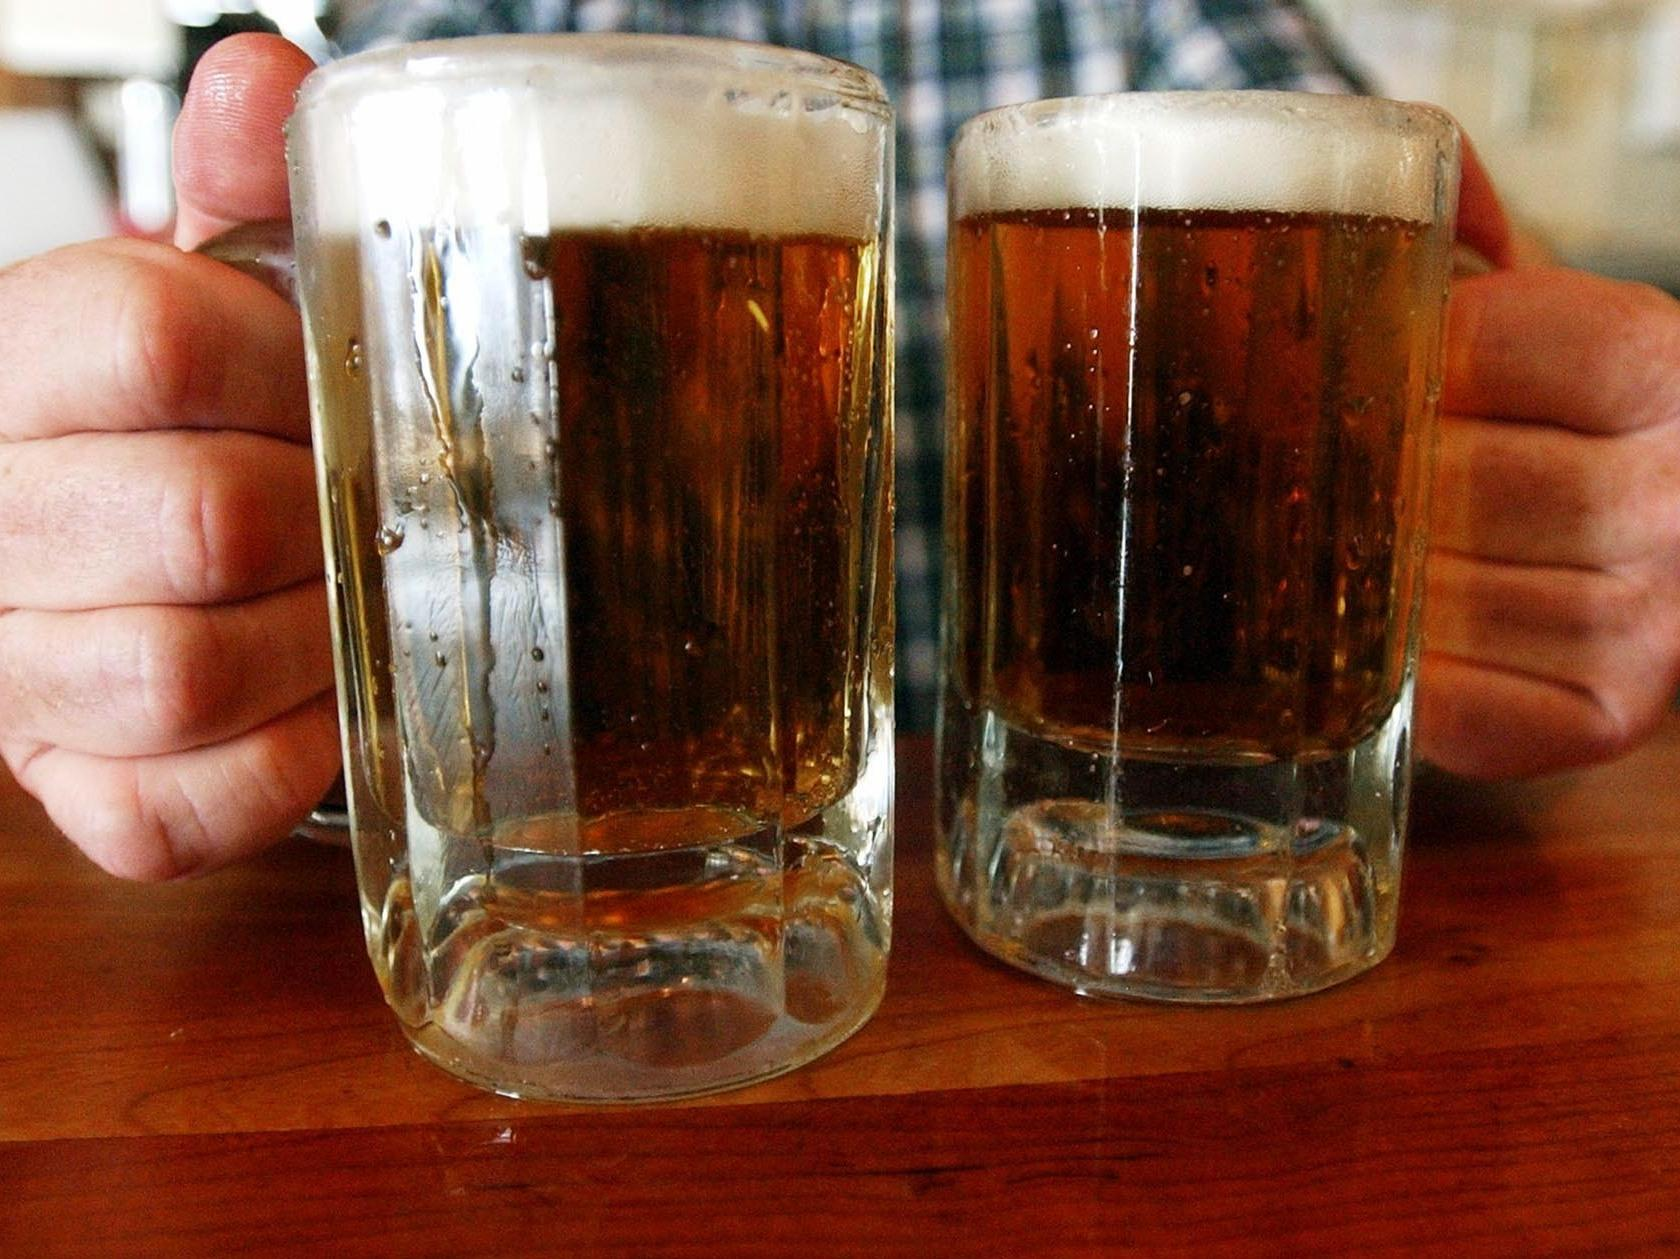 College Students Can Learn To Drink Less, If Schools Help